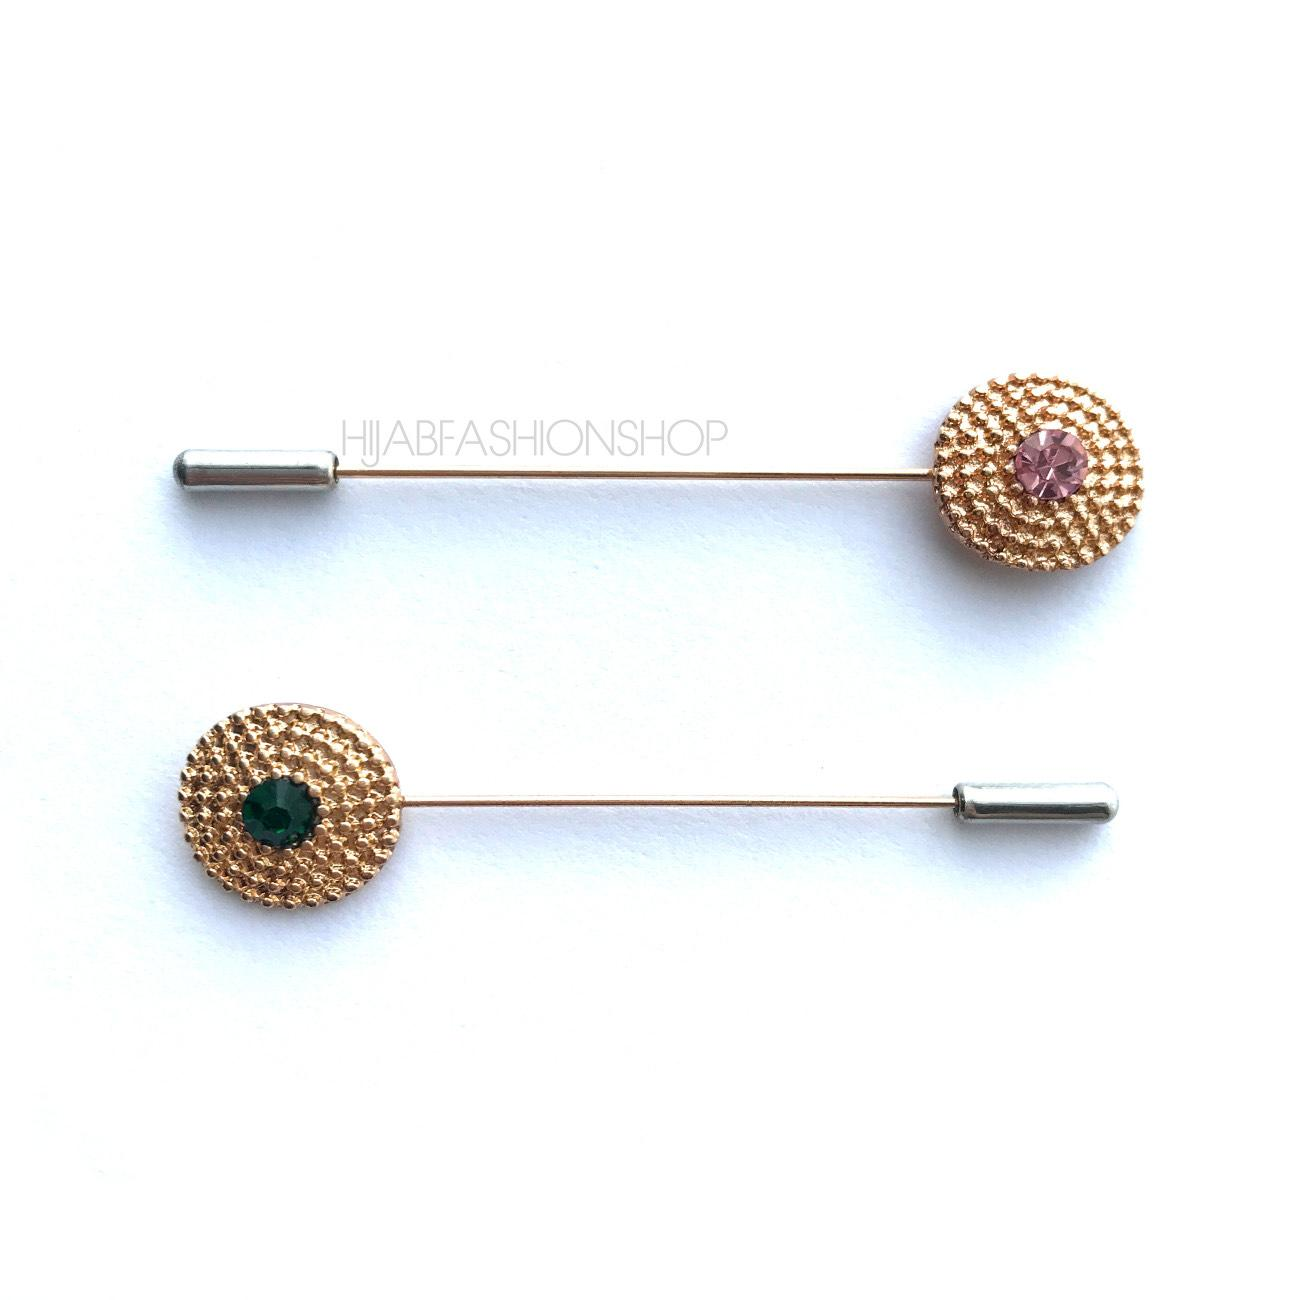 2 gold coin hijab pins with different colour crystals in the middle